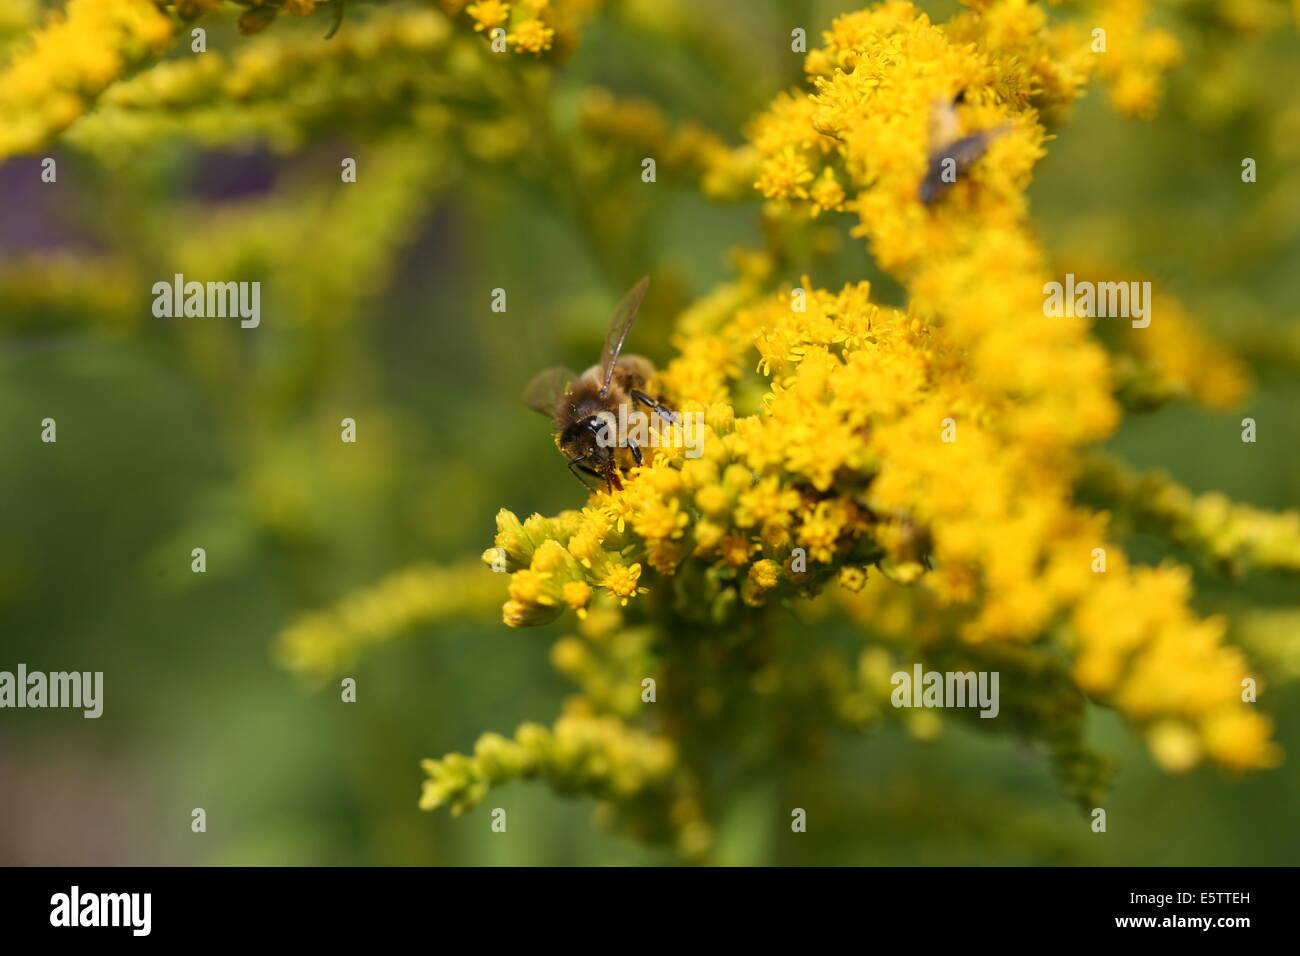 honey bee feeding on nectar - Stock Image